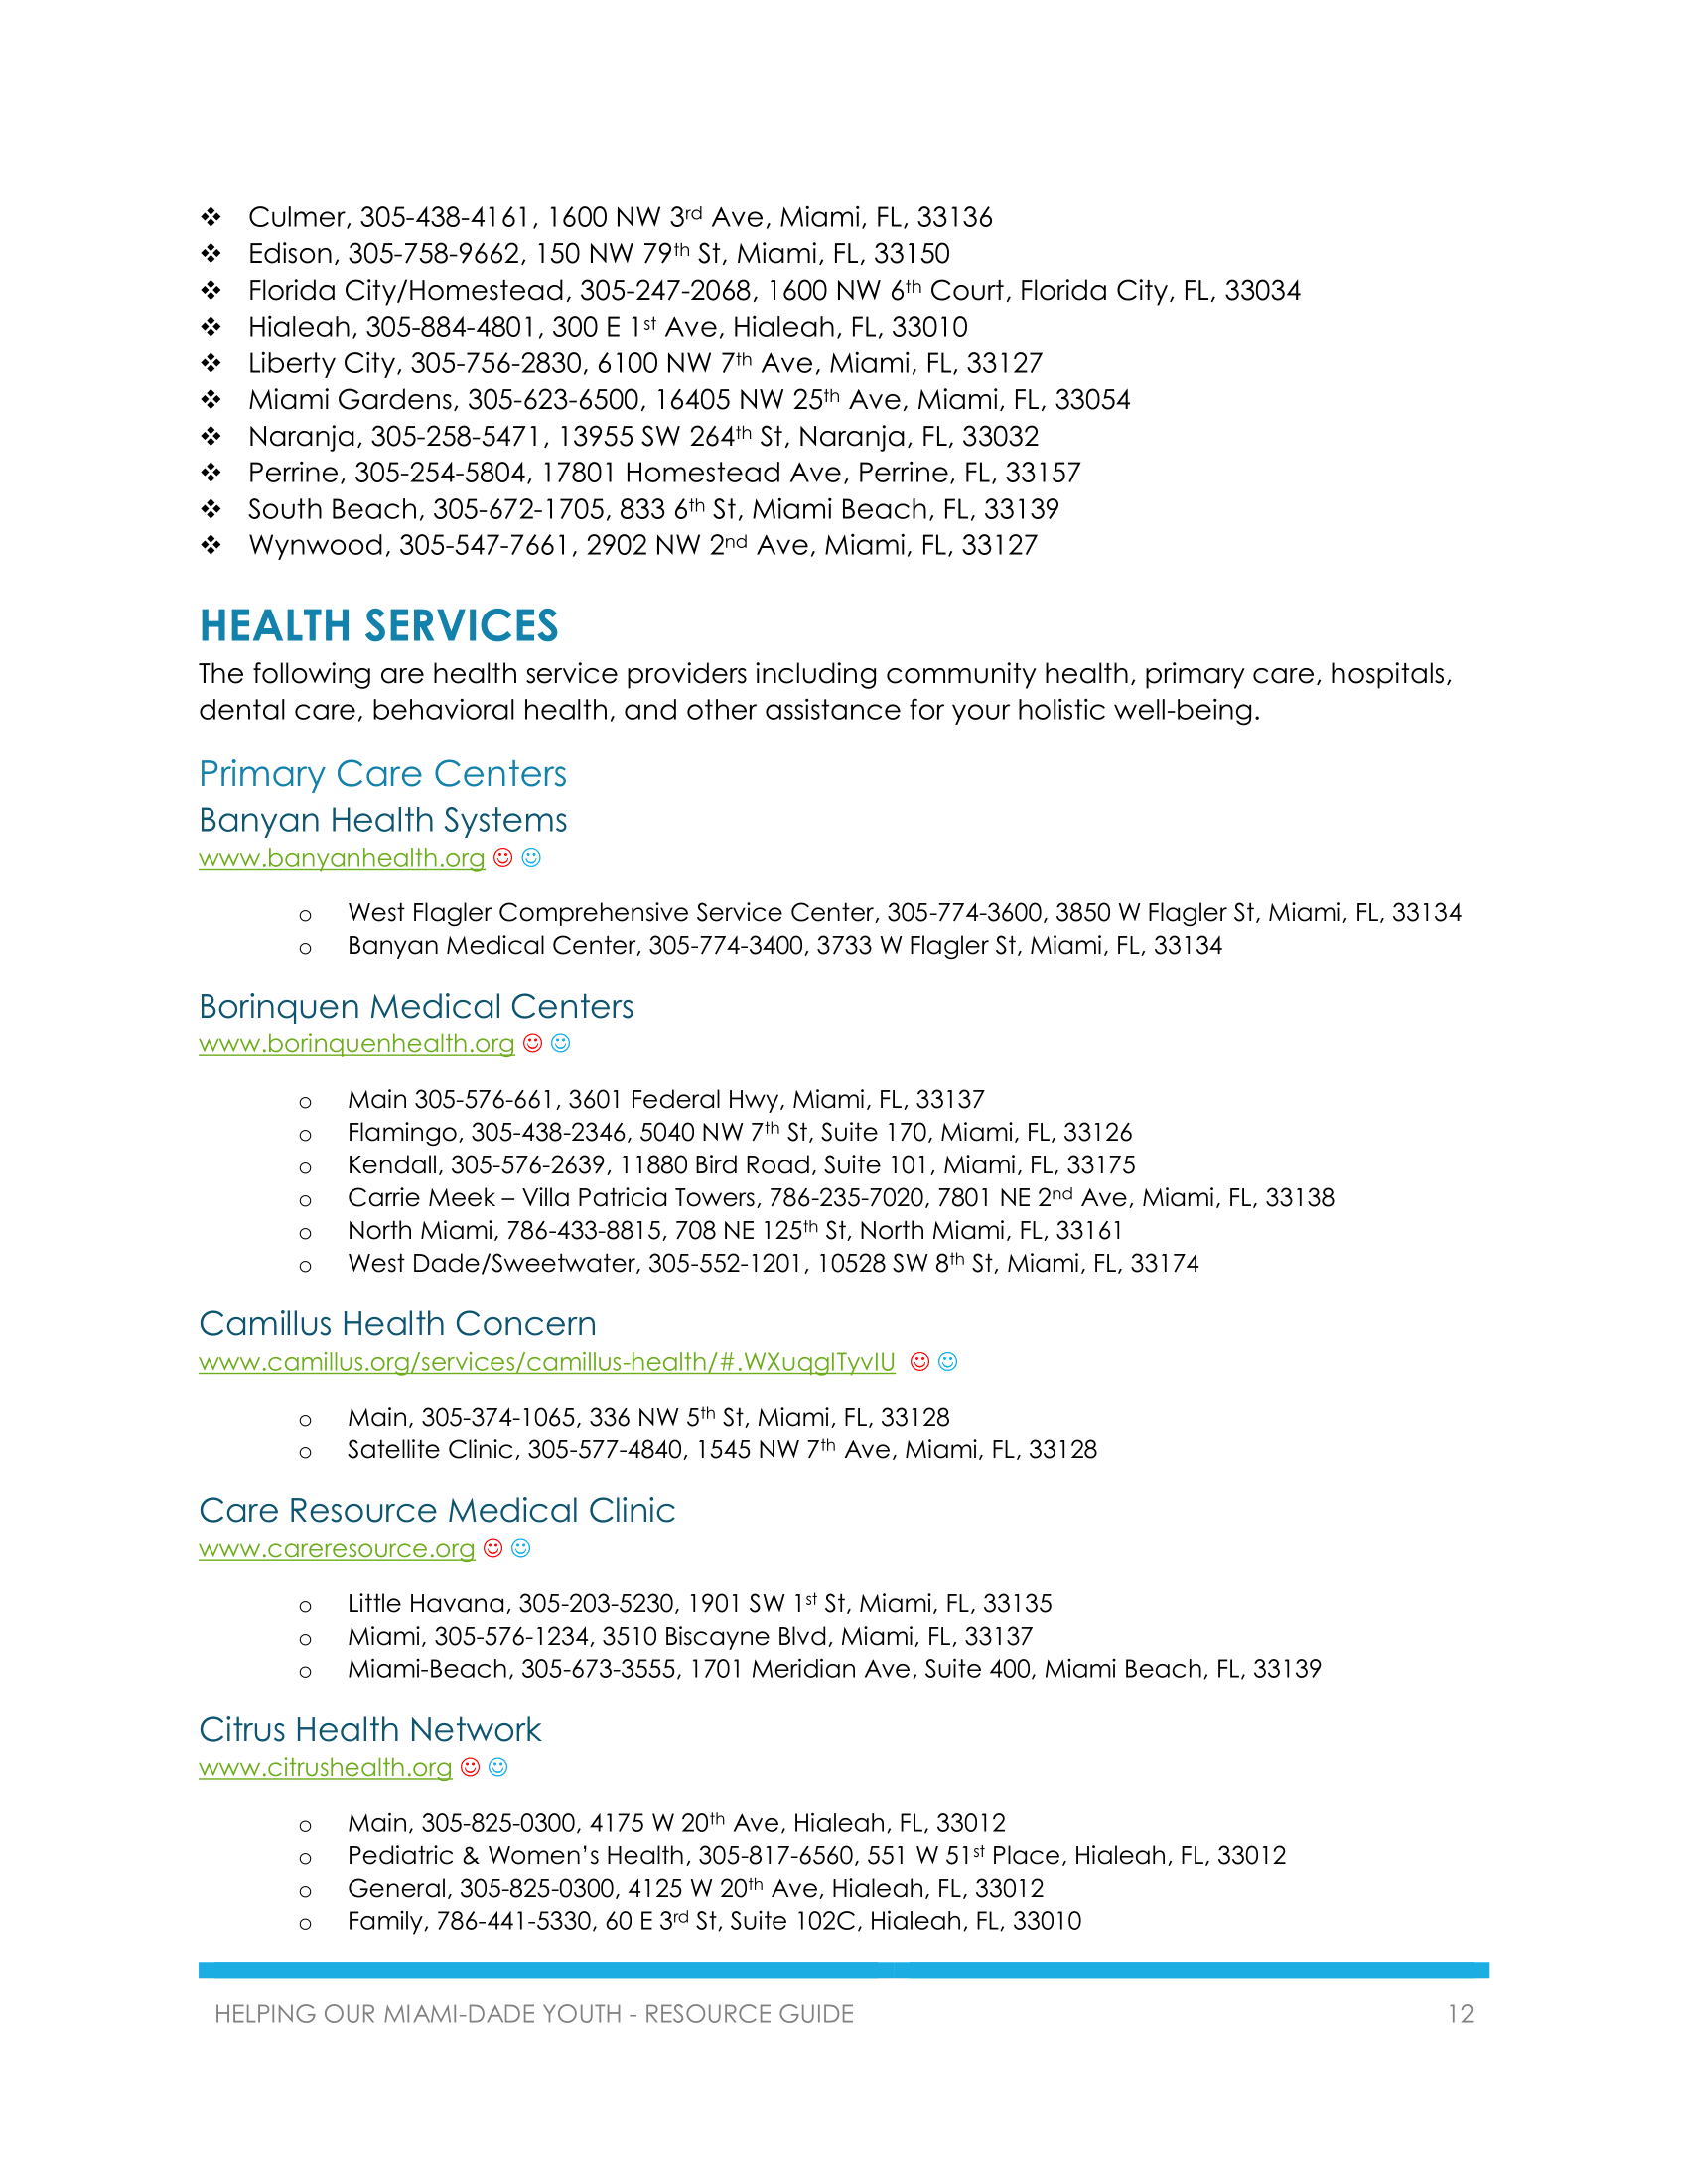 Youth Resource Guide - May 2018-17.png